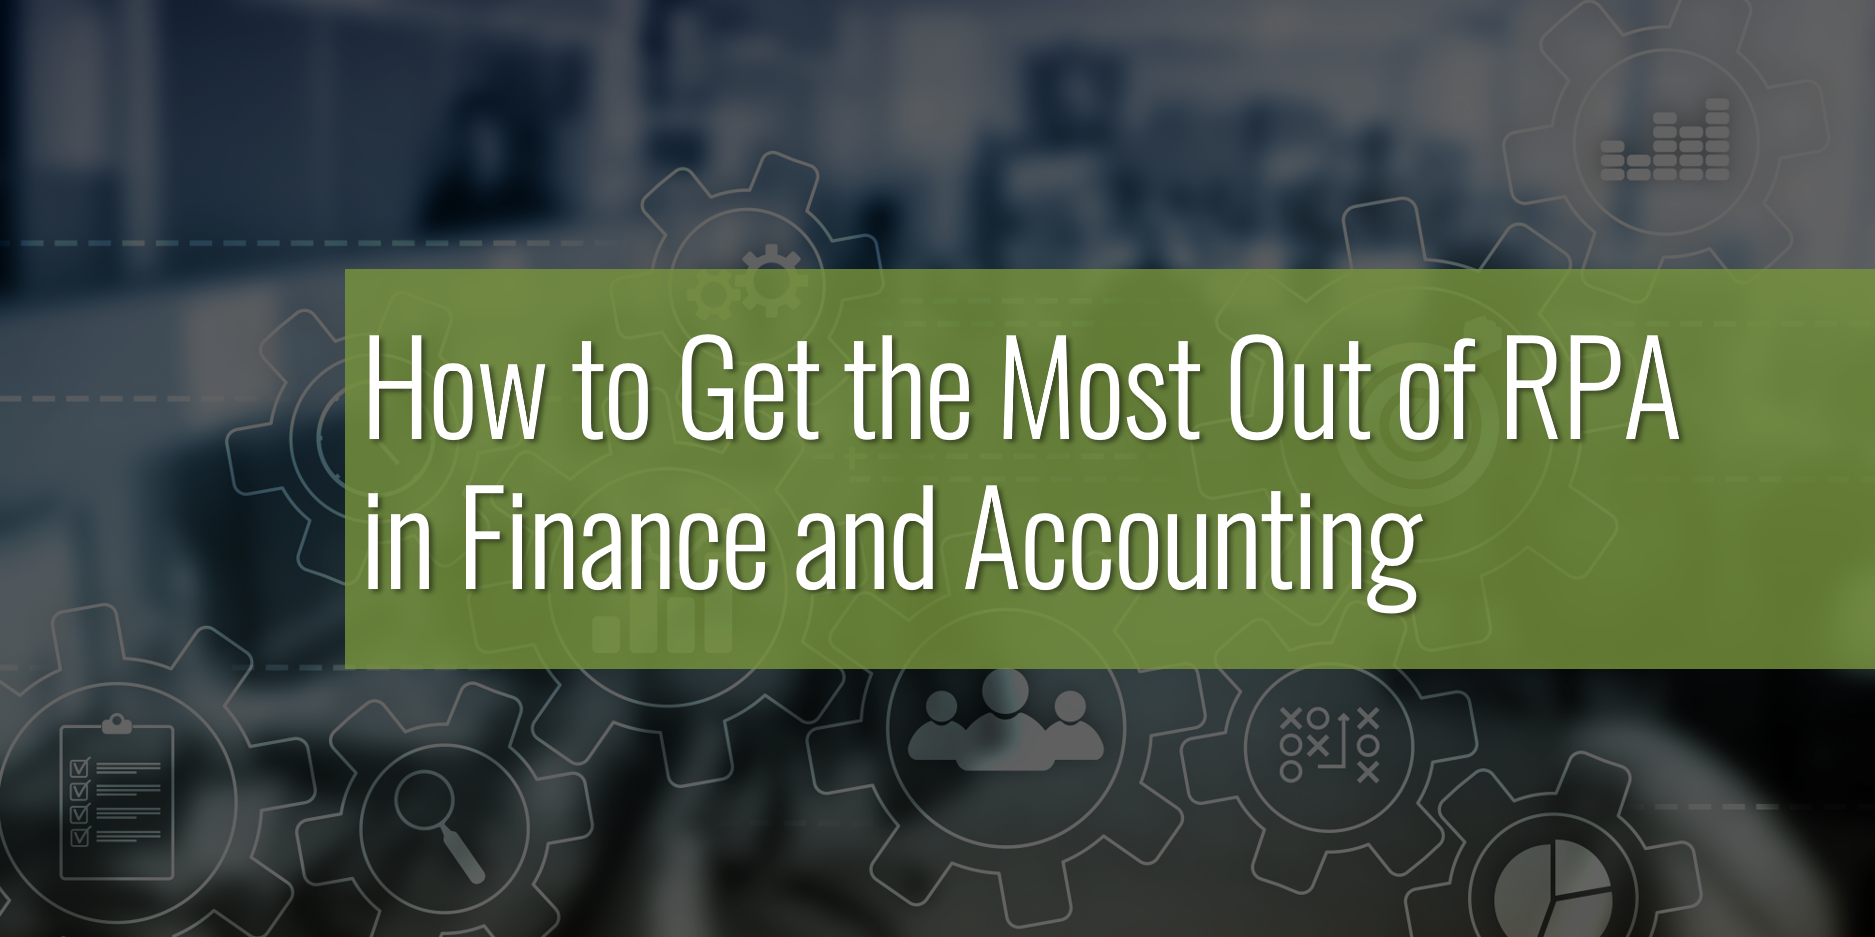 How To Get The Most Out Of RPA In Finance And Accounting